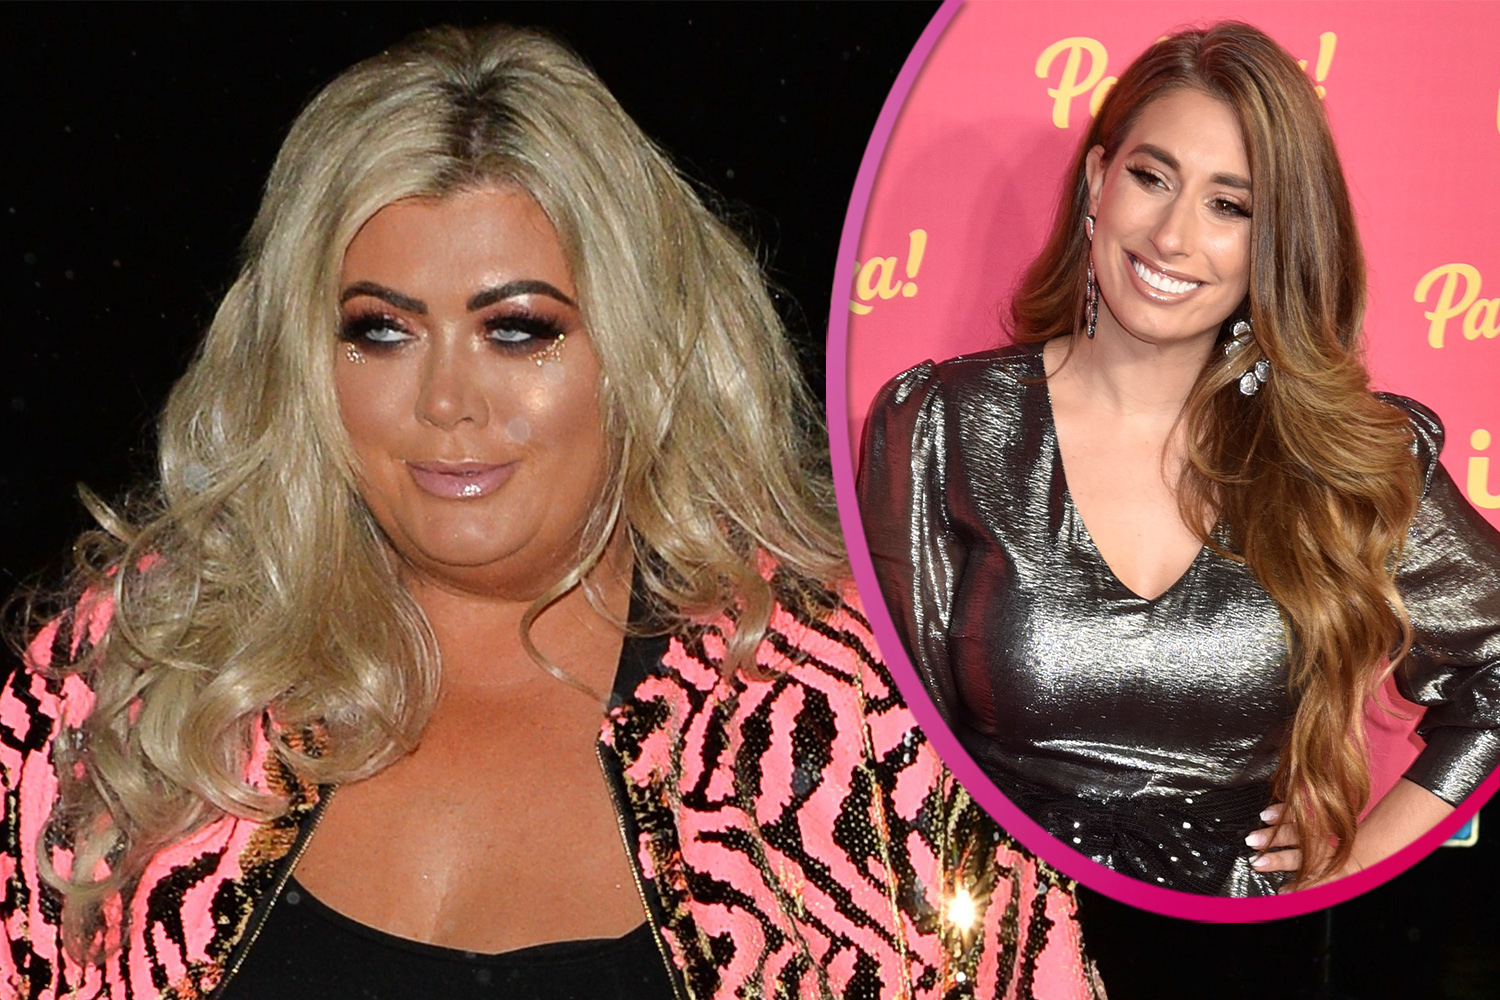 Gemma Collins and Stacey Solomon lead celebrities clapping to pay tribute to NHS